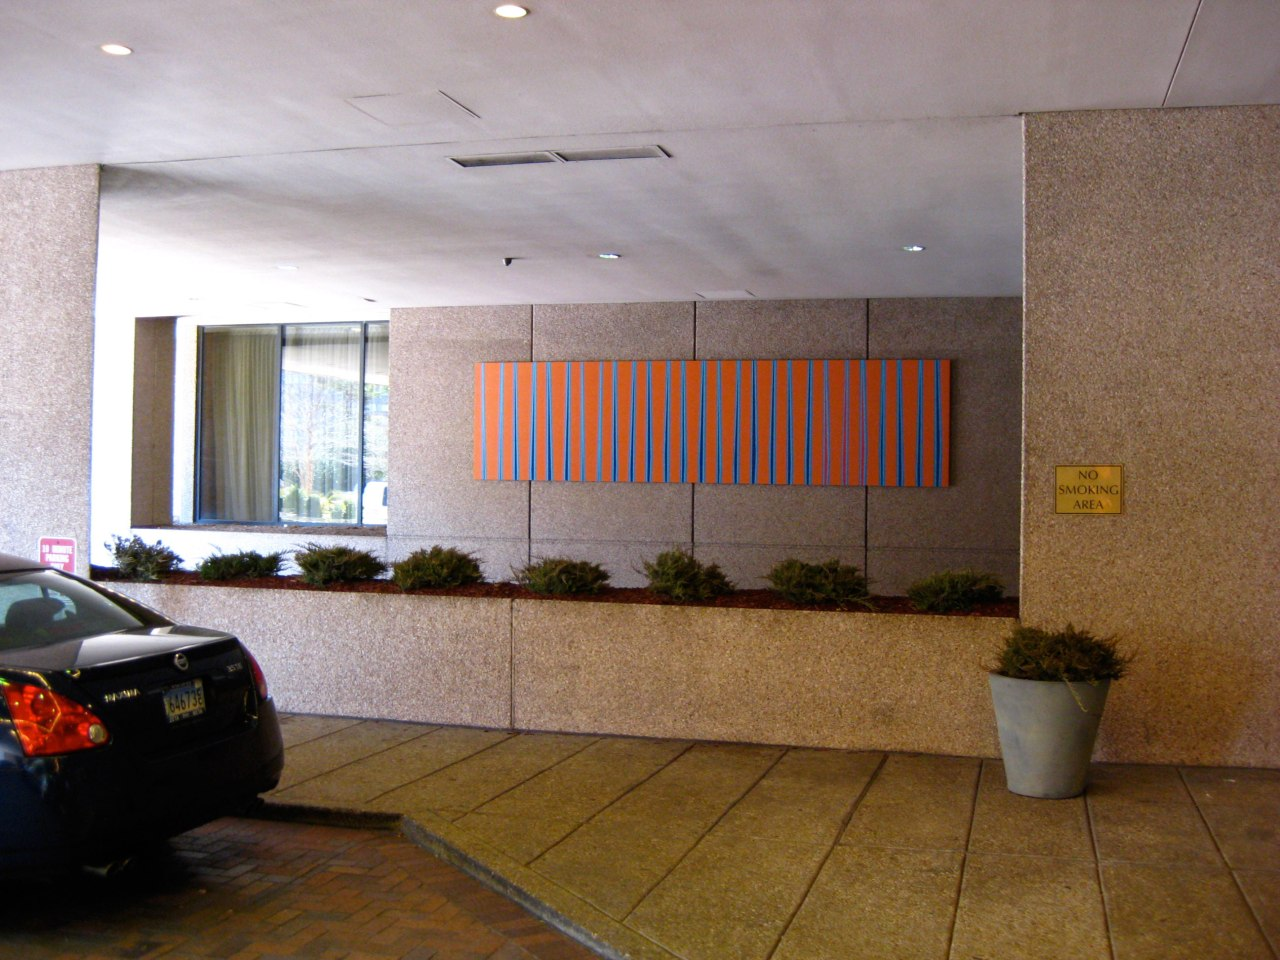 Installation at the Marriott at Reagan National Airport